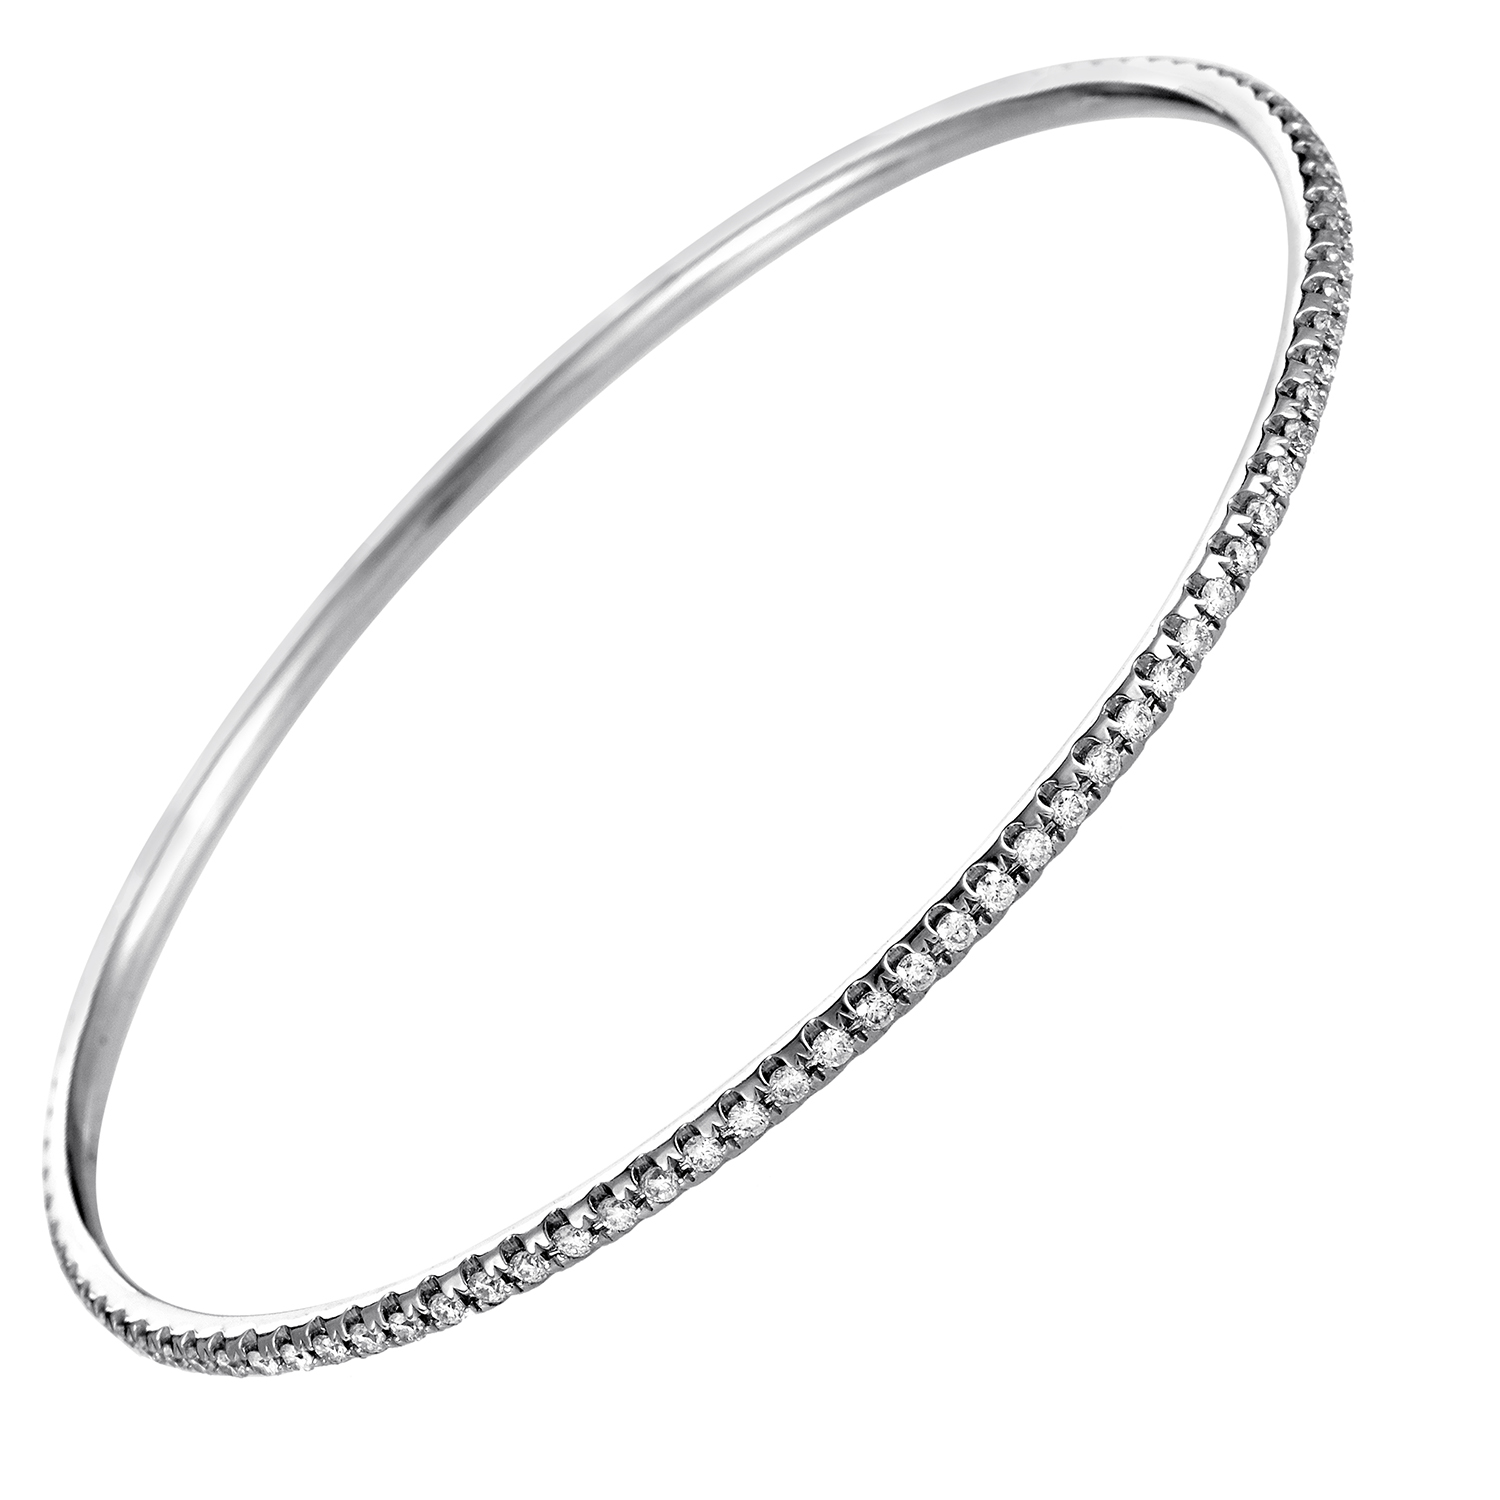 Women's Thin 18K White Gold Diamond Pave Bangle Bracelet ALB-6555W